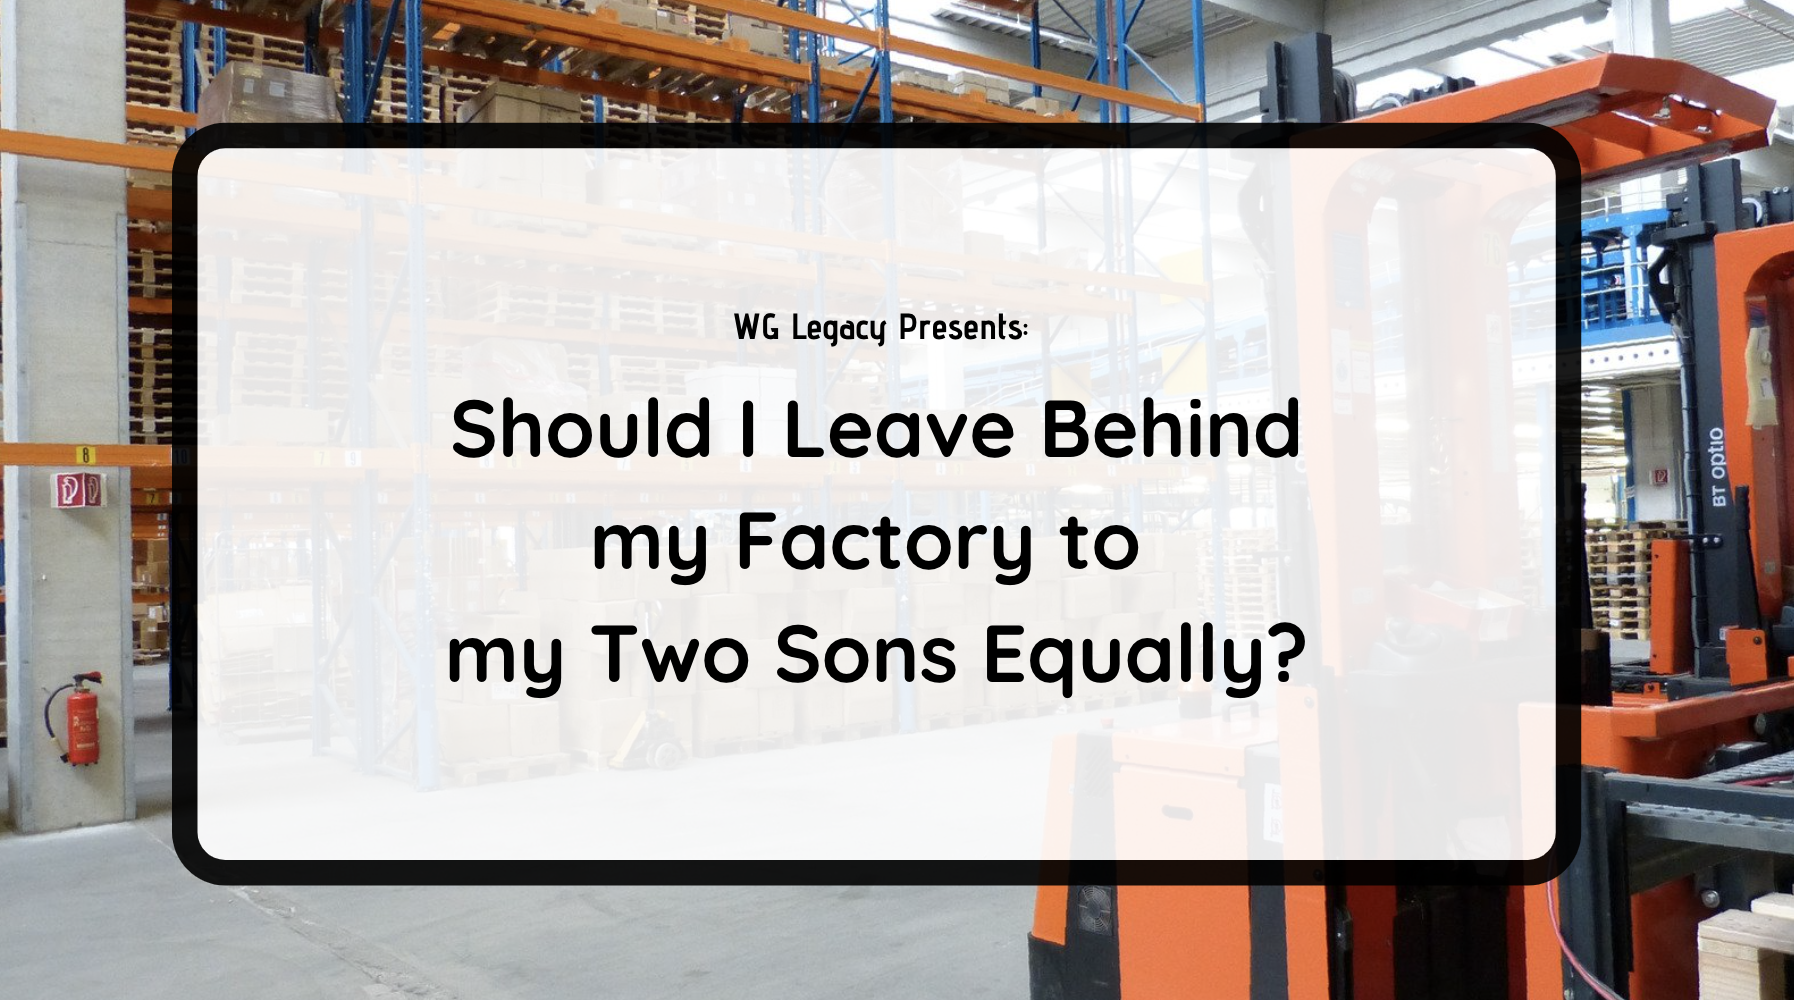 Should I Leave My Factory to My Two Sons Equally?